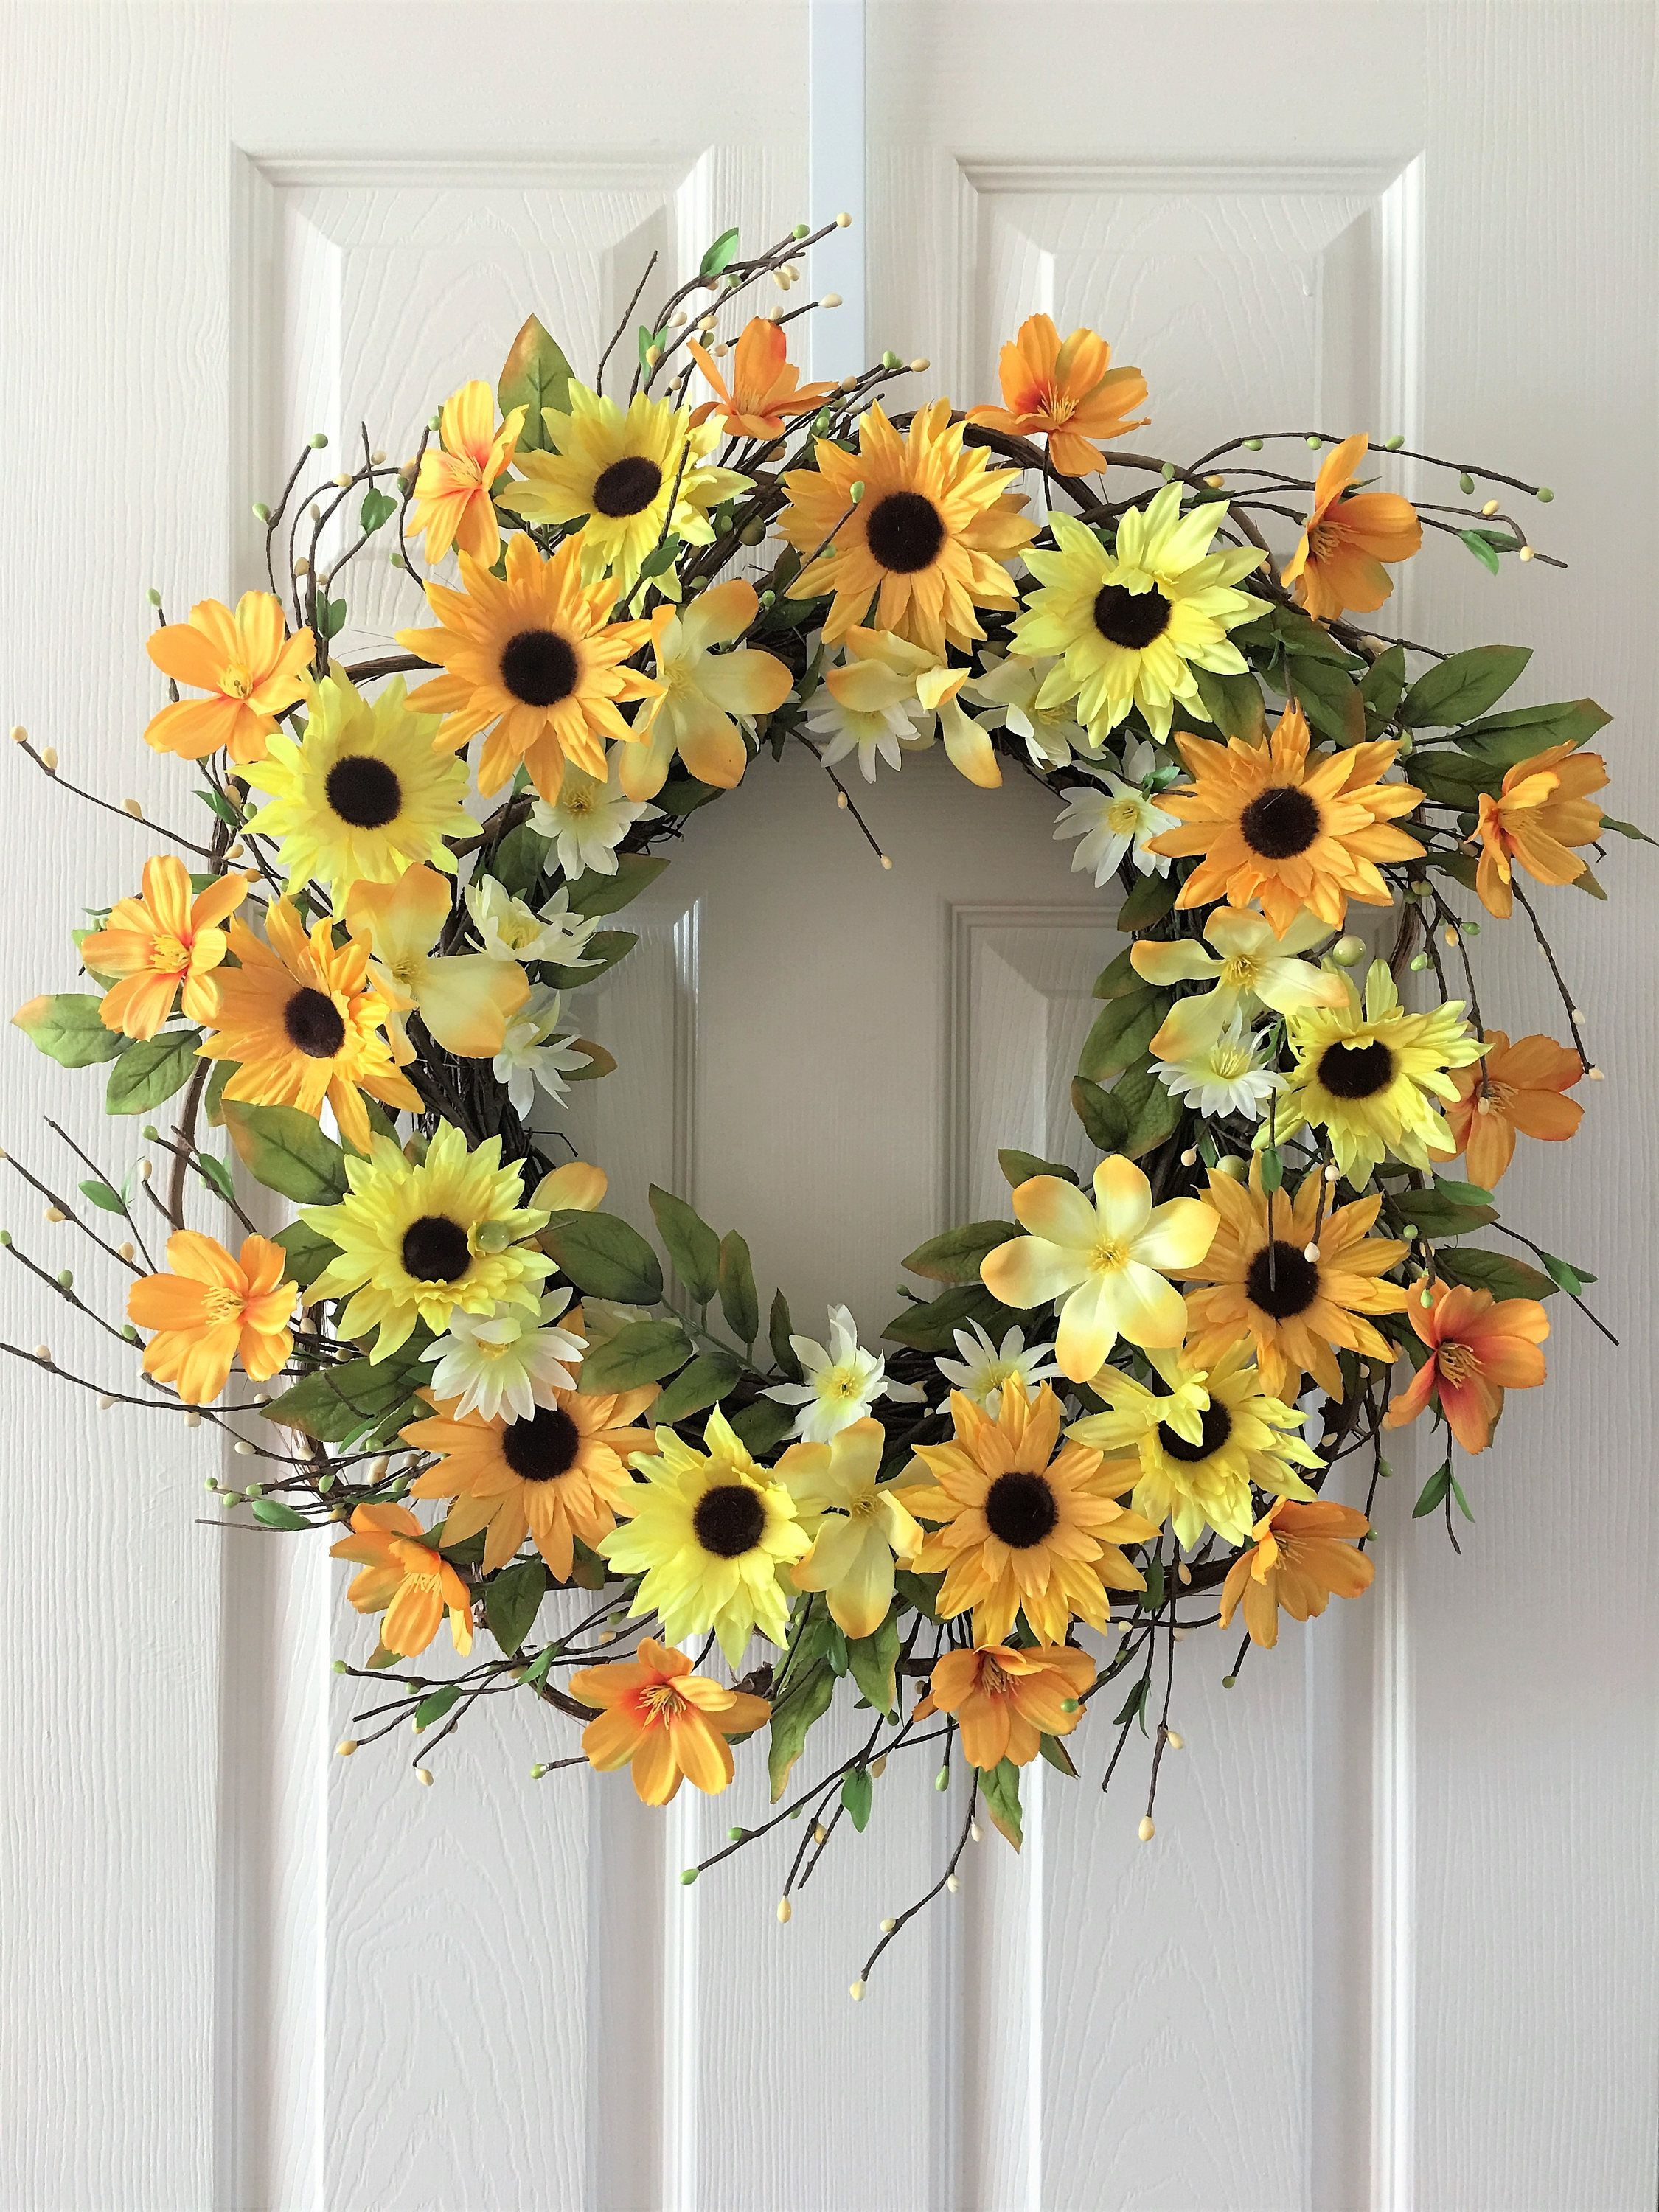 Flower Berry Wreath Summer For Front Door Everyday By H2hcreation On Etsy